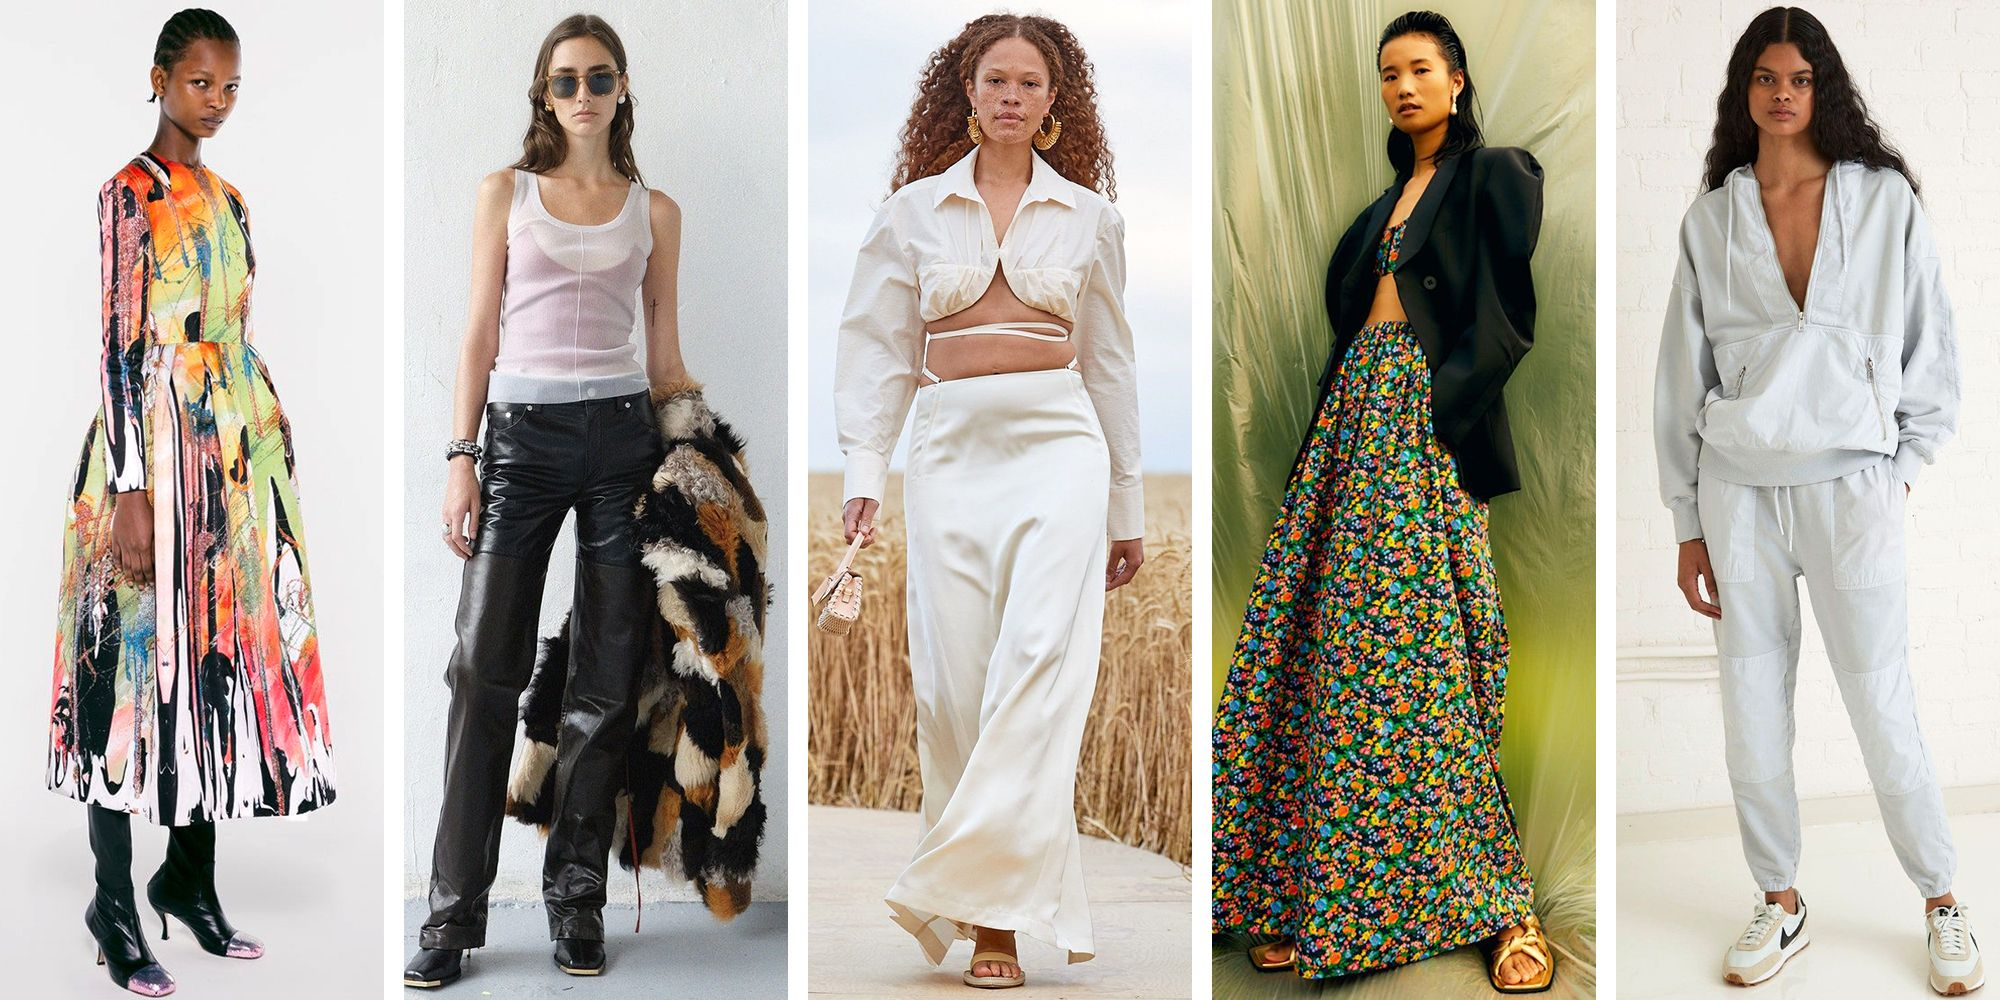 The Biggest Trends of Spring 7 So Far